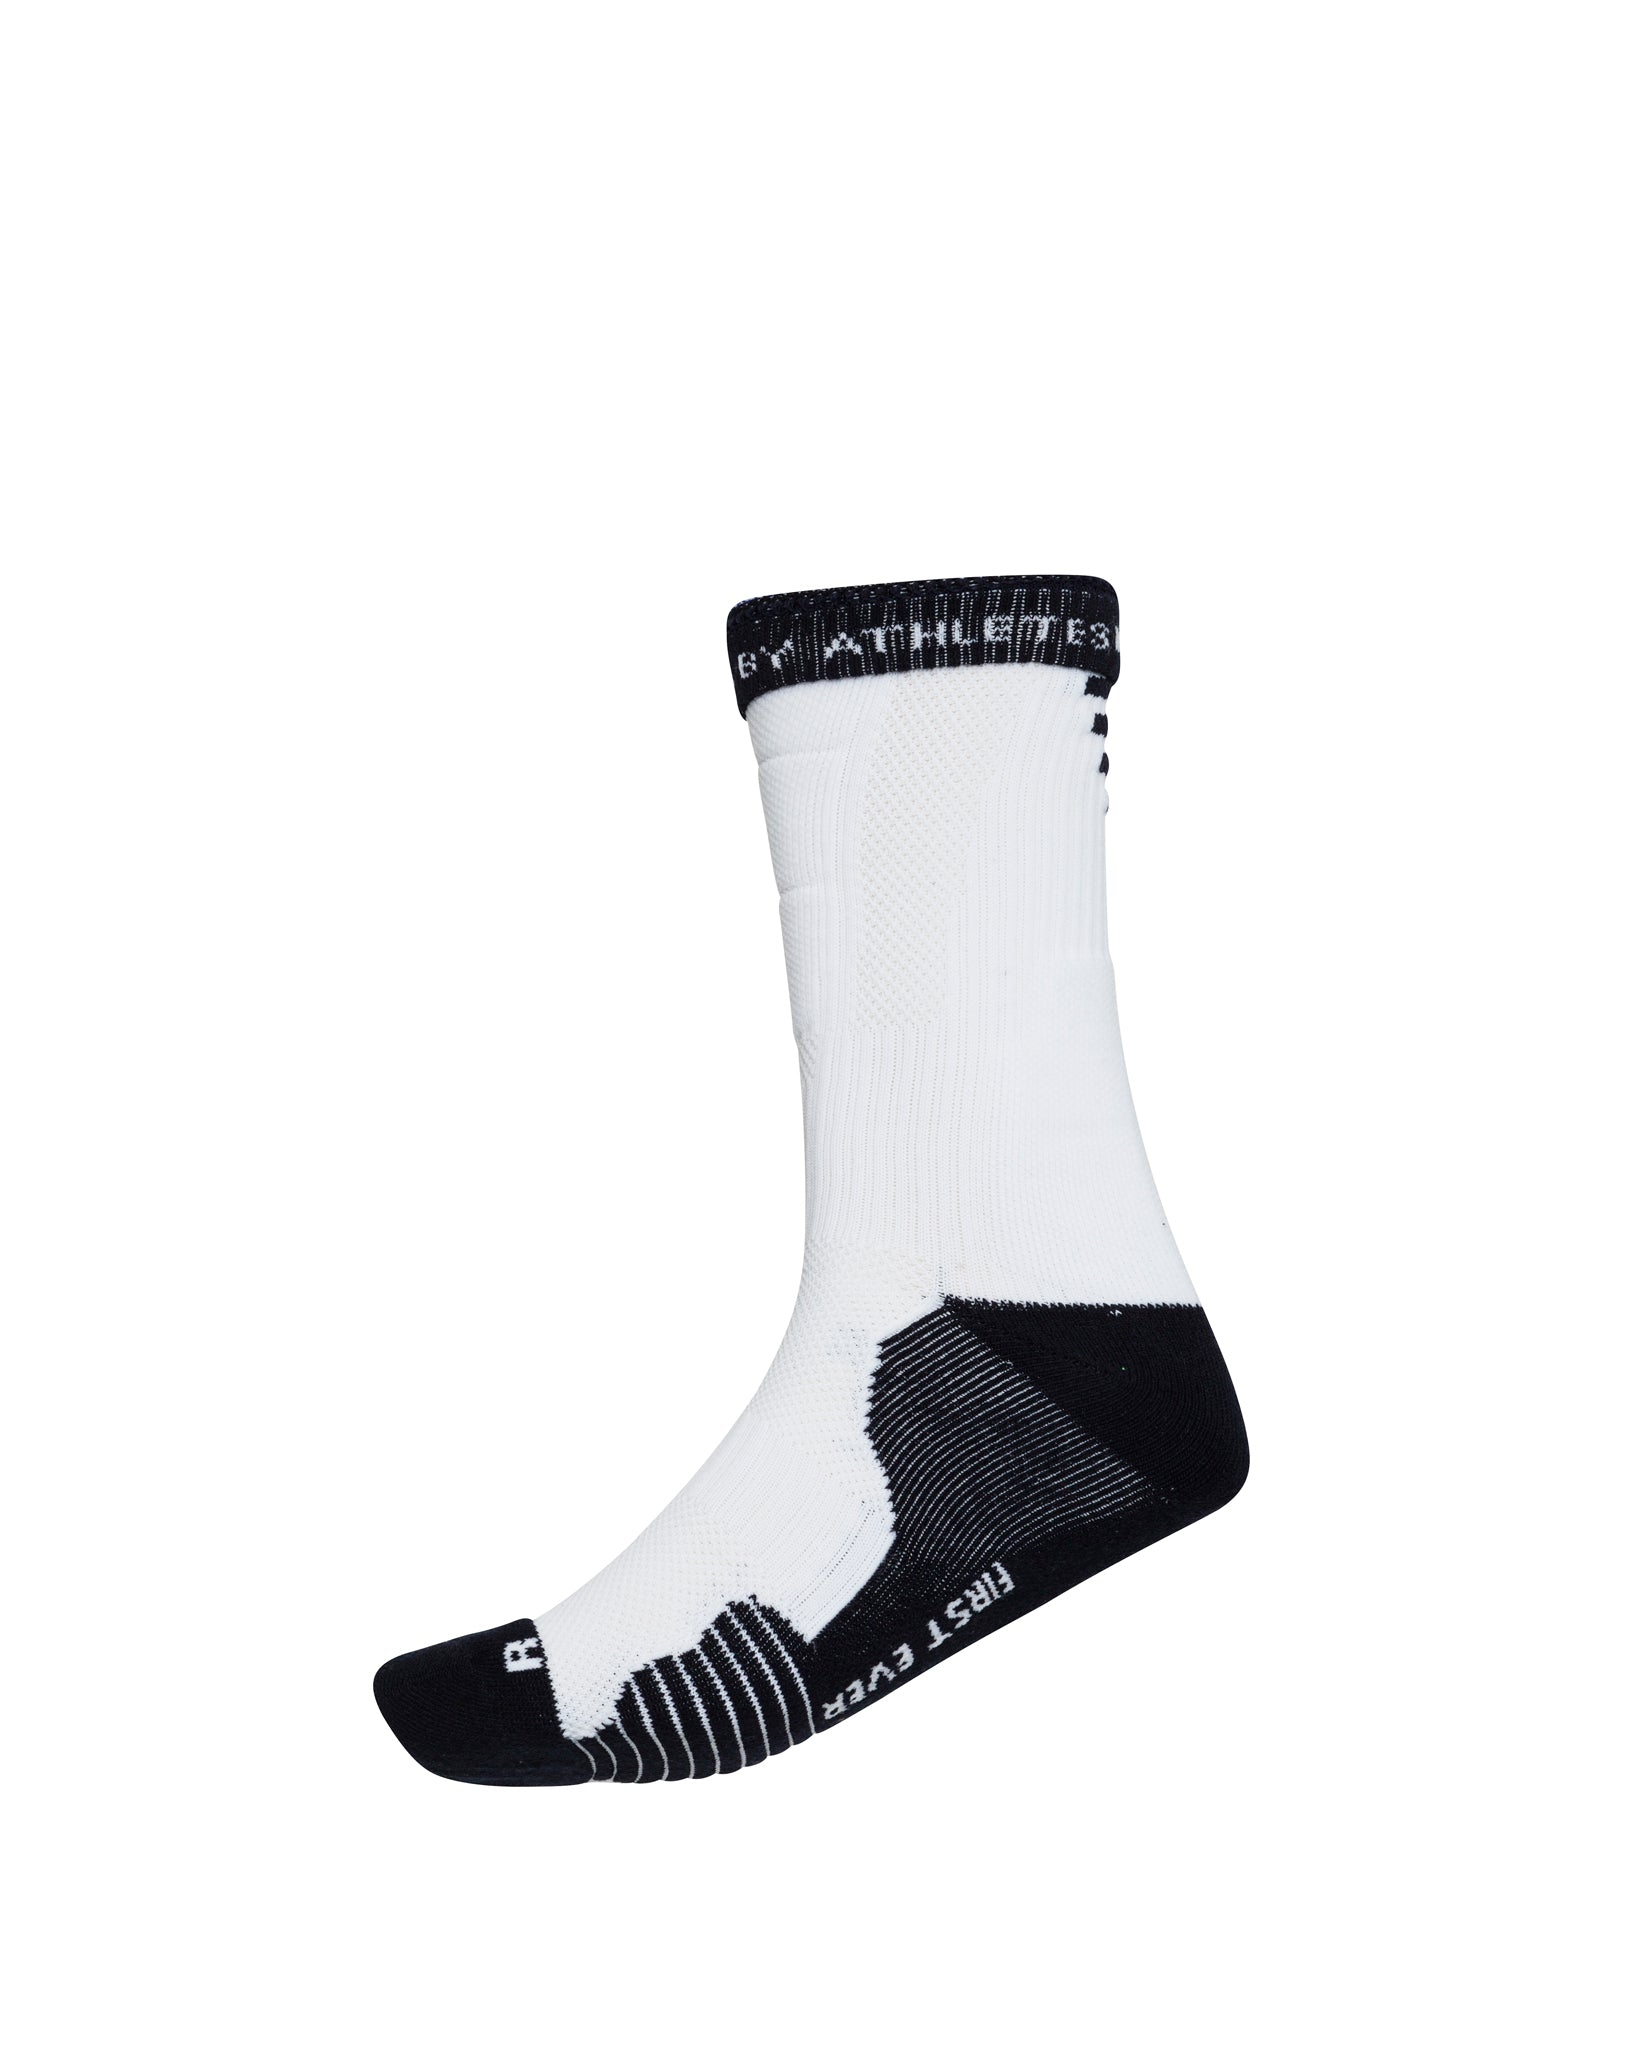 Melbourne United 19/20 Official NBL Away Socks